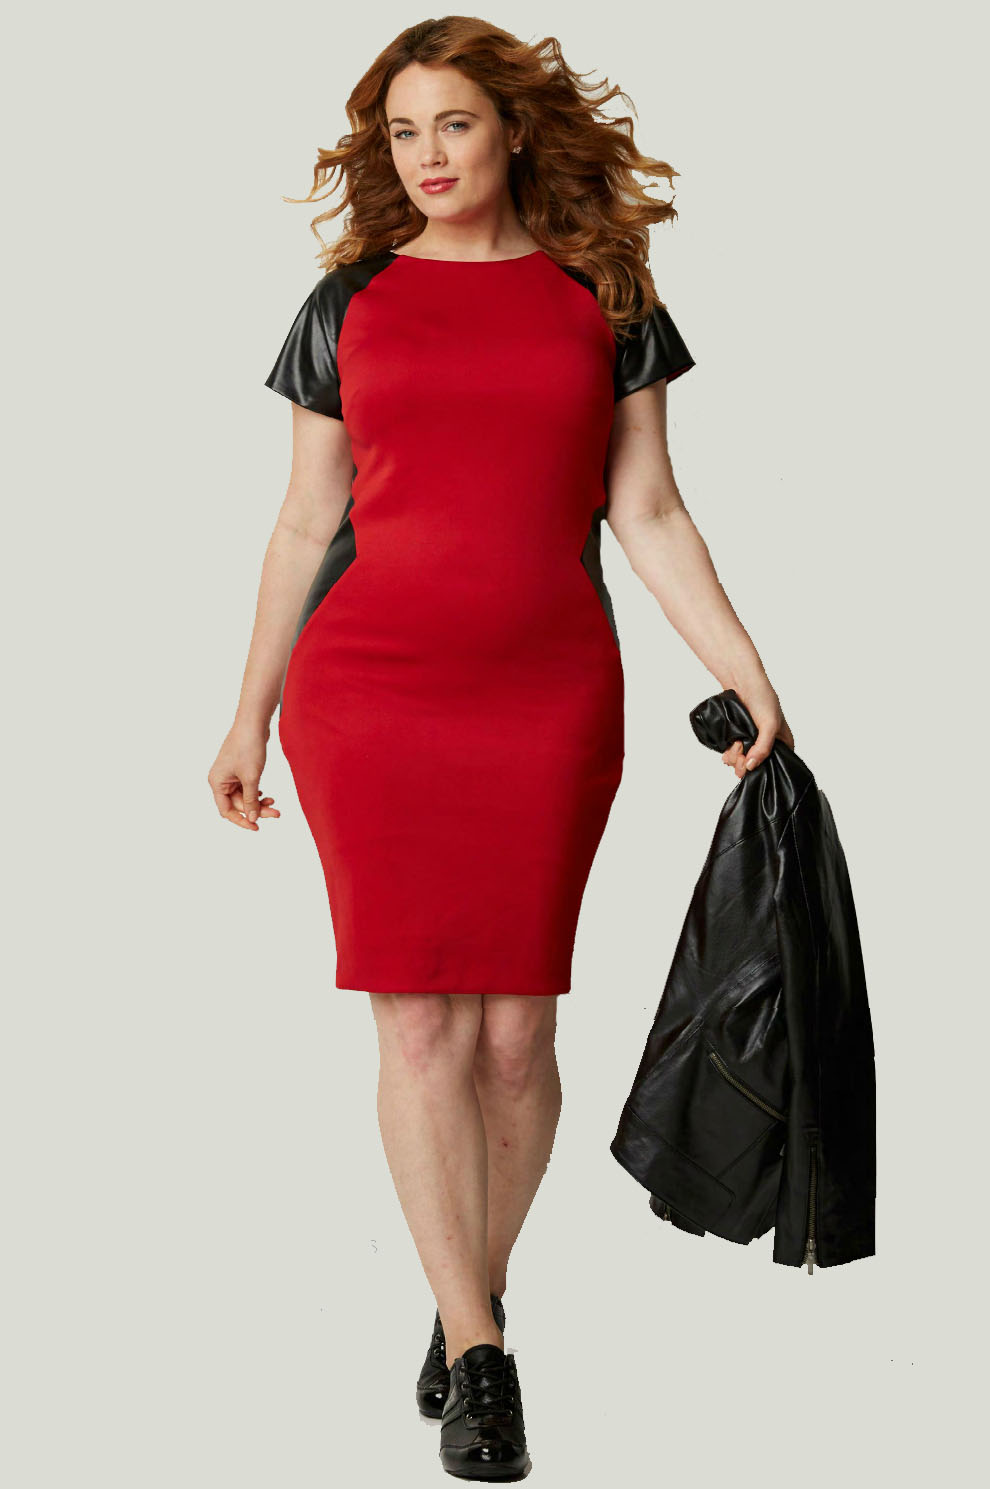 Faux Leather Detail Plus Size Ponte Knit Dress From ...